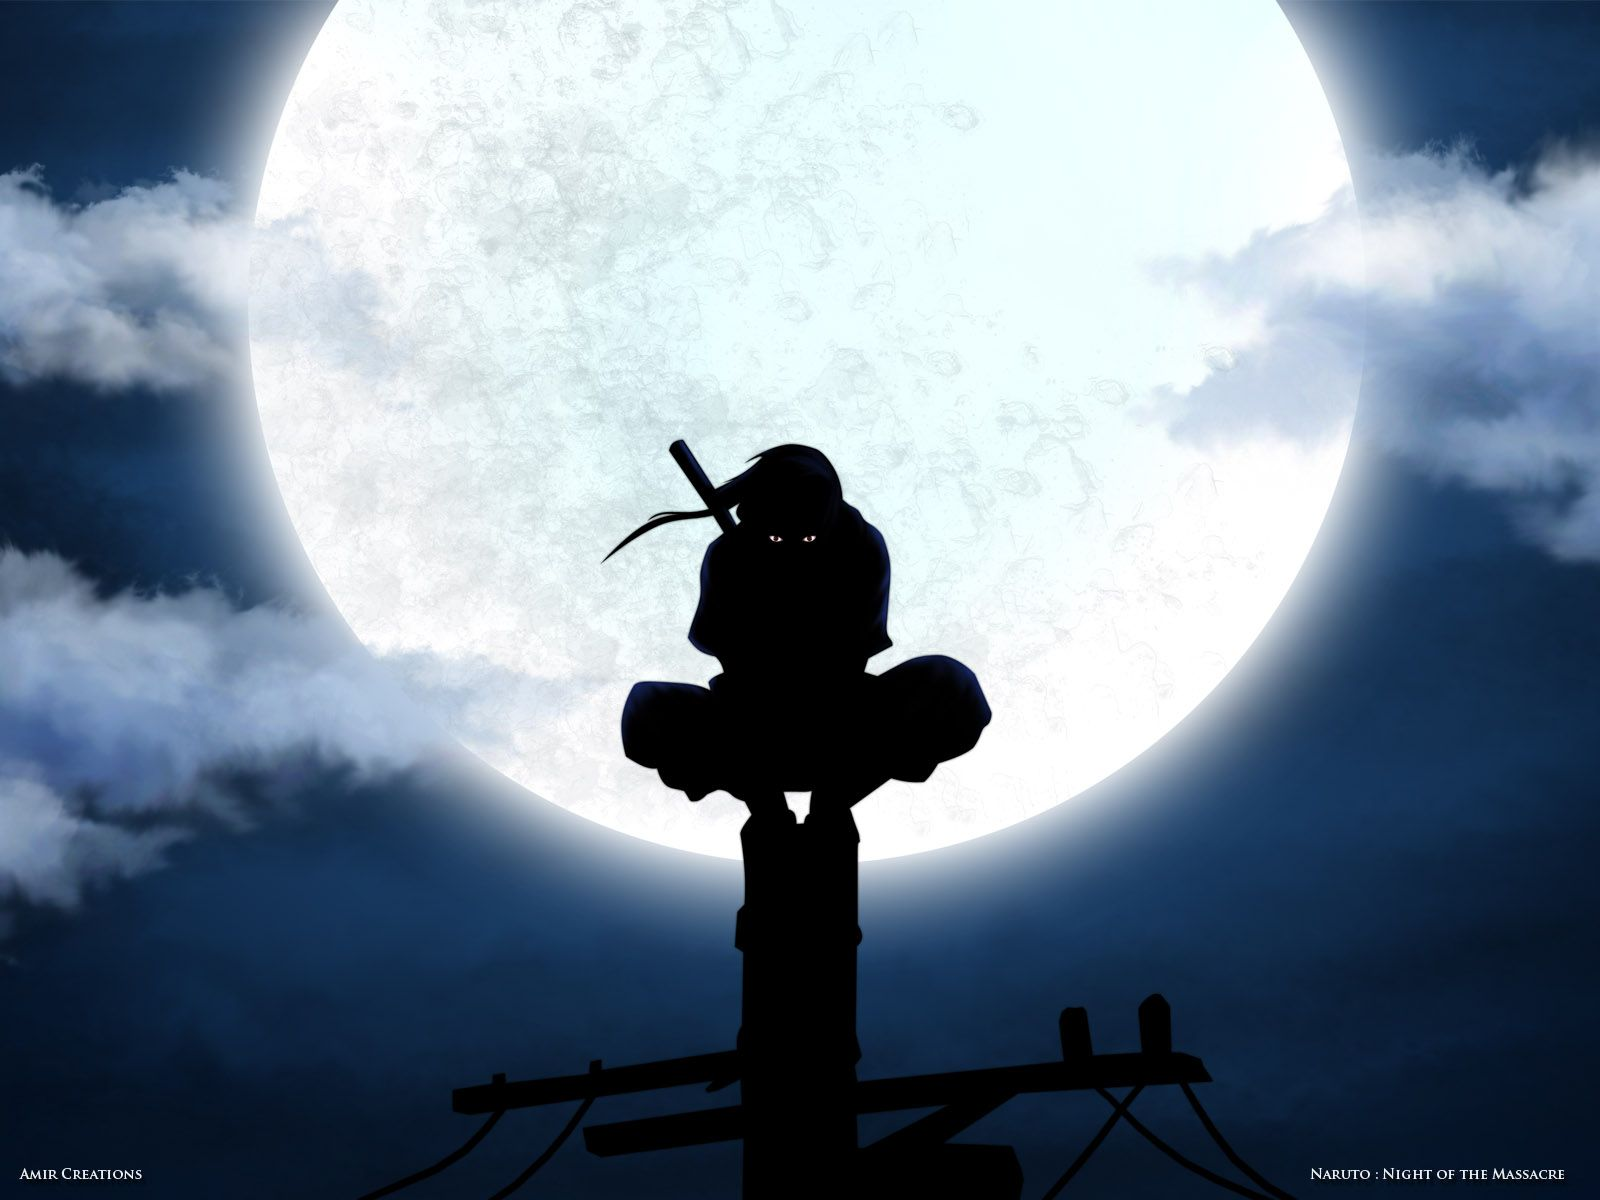 Naruto Shippuden Itachi Wallpaper High Quality Resolution B0a Ninja Wallpaper Wallpaper Naruto Shippuden Naruto Wallpaper